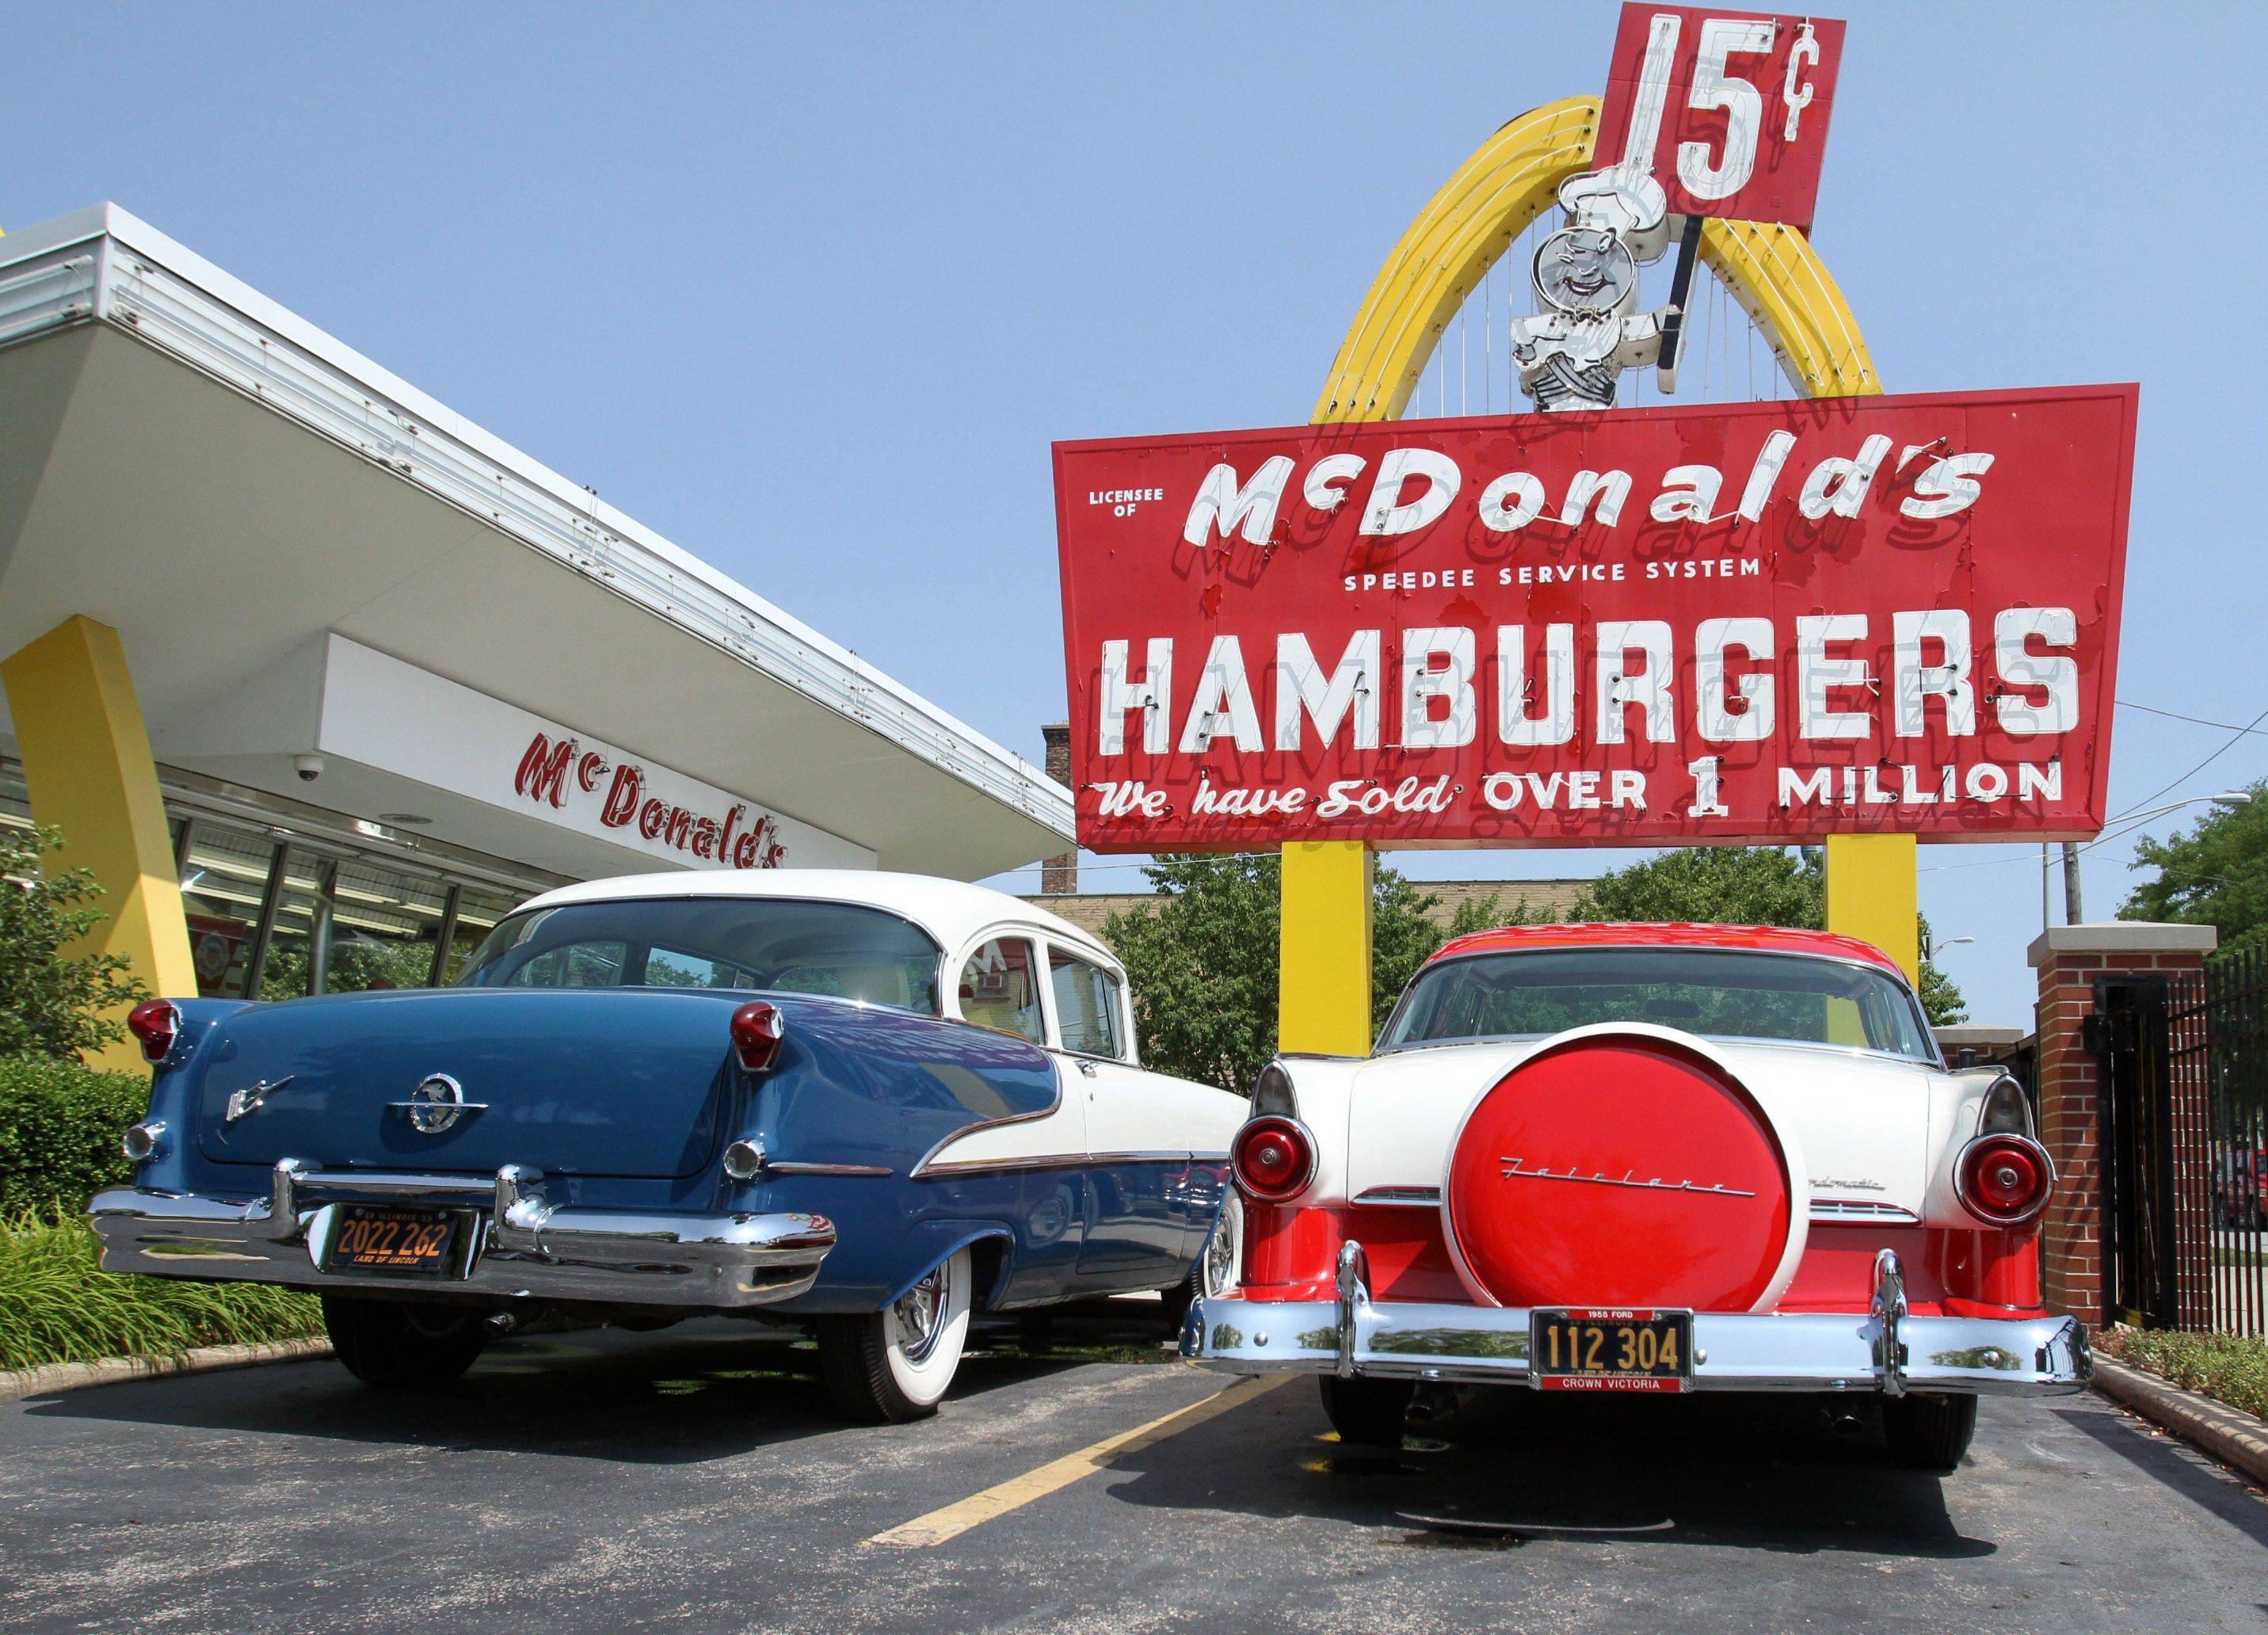 Des Plaines city officials say they hope to persuade McDonald's officials to keep the museum in town, despite rumors that portions of it could be moved, or the entire site shut down.